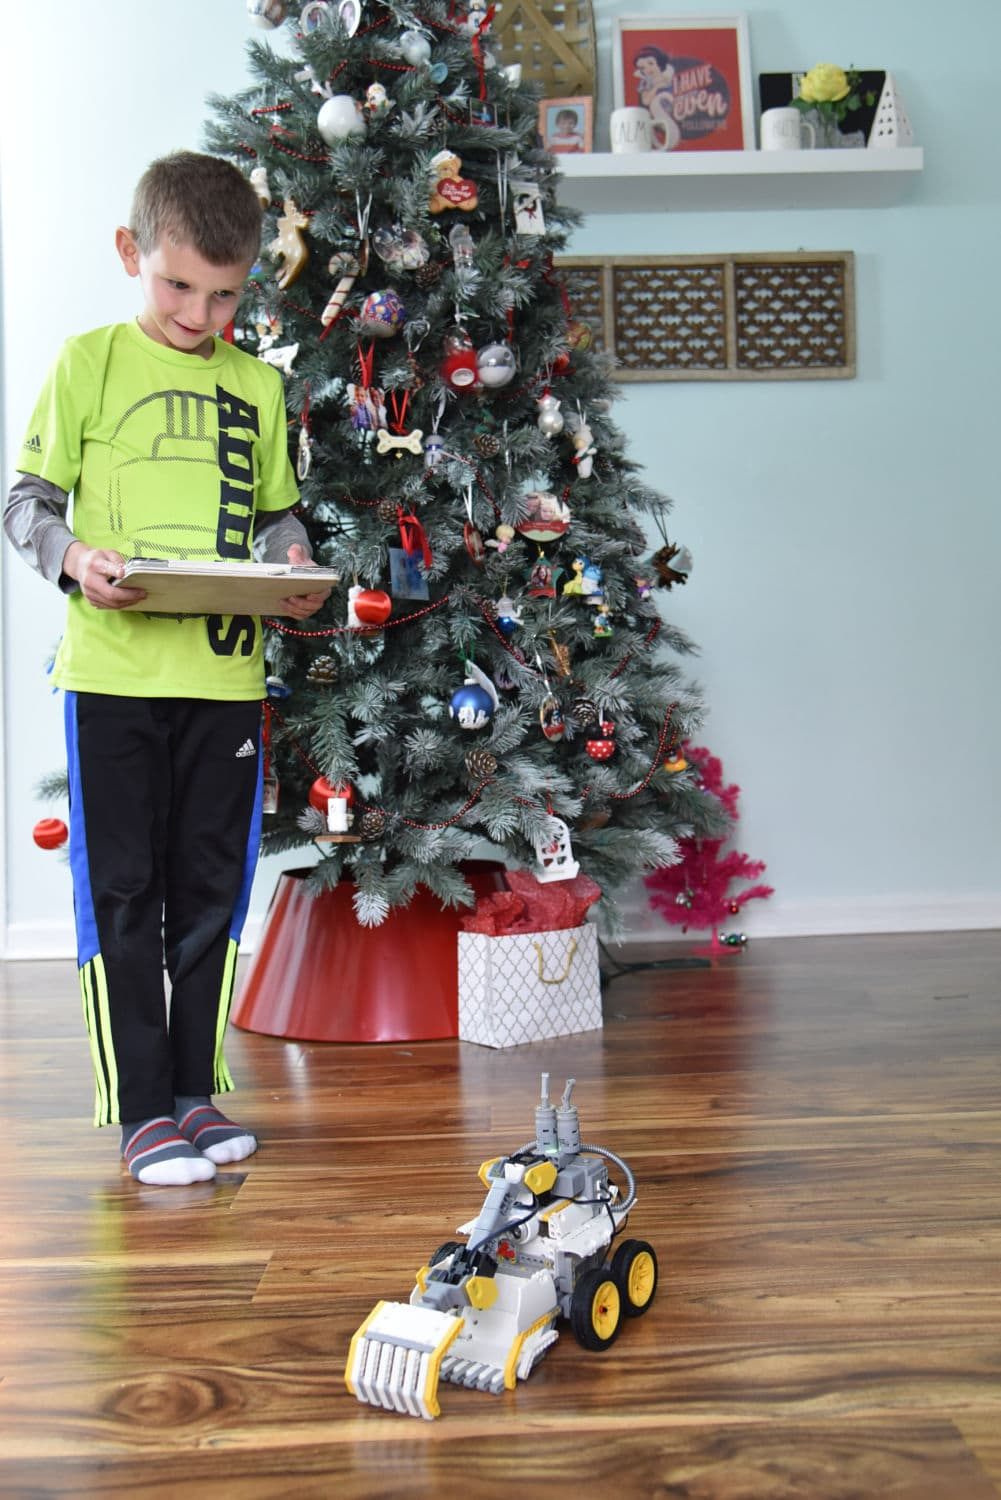 playing with the jimu robot